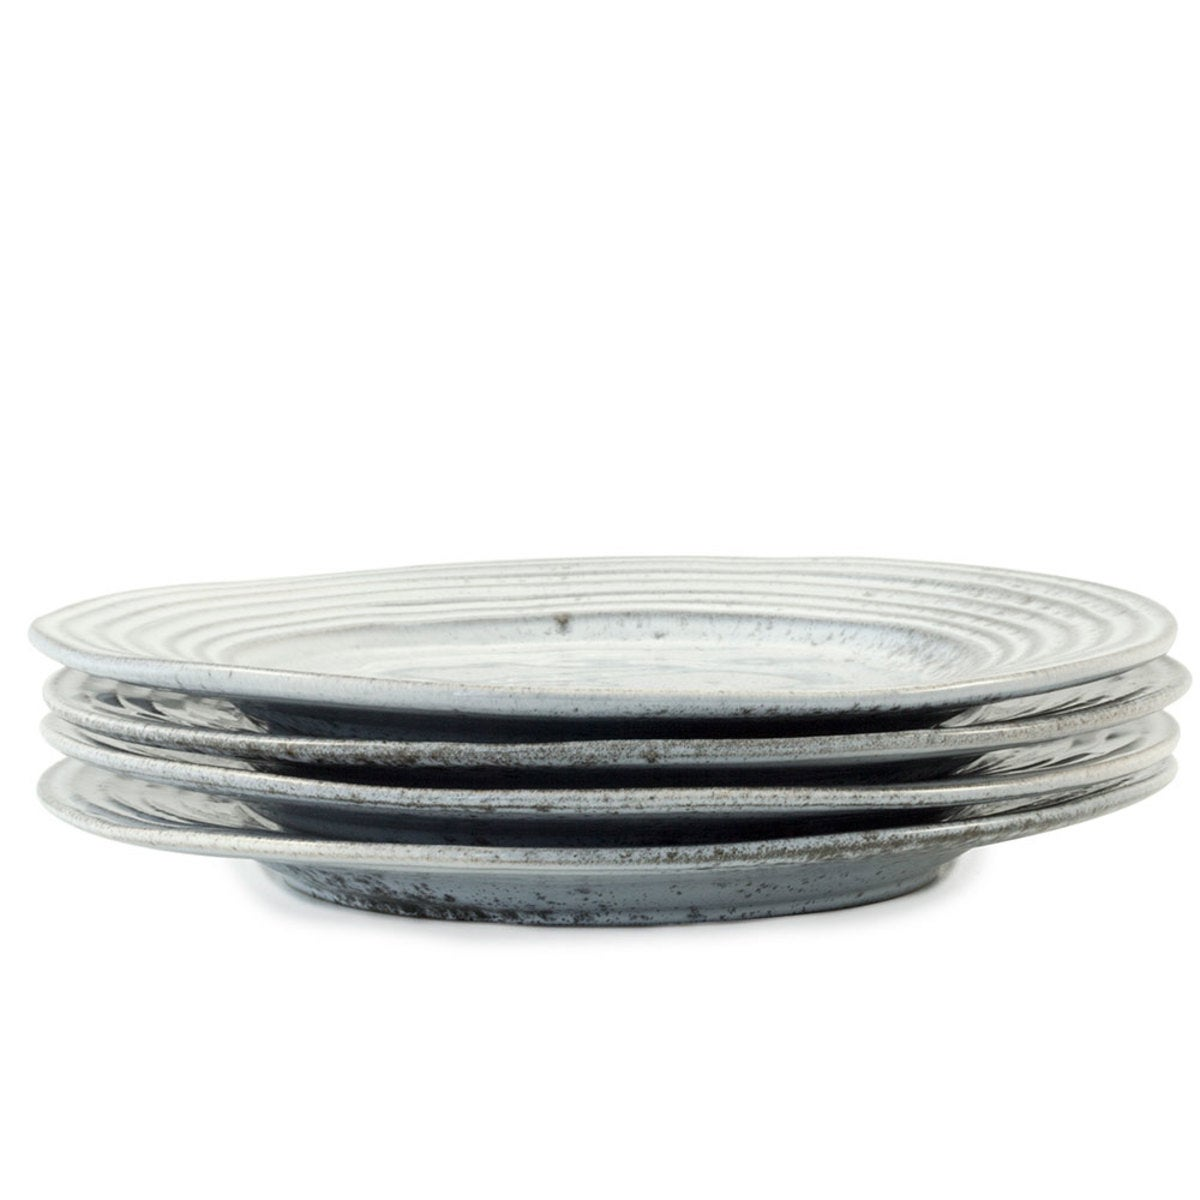 Rustique Stoneware Dinner Plate - Cloud, Set of 4 - Weathered White